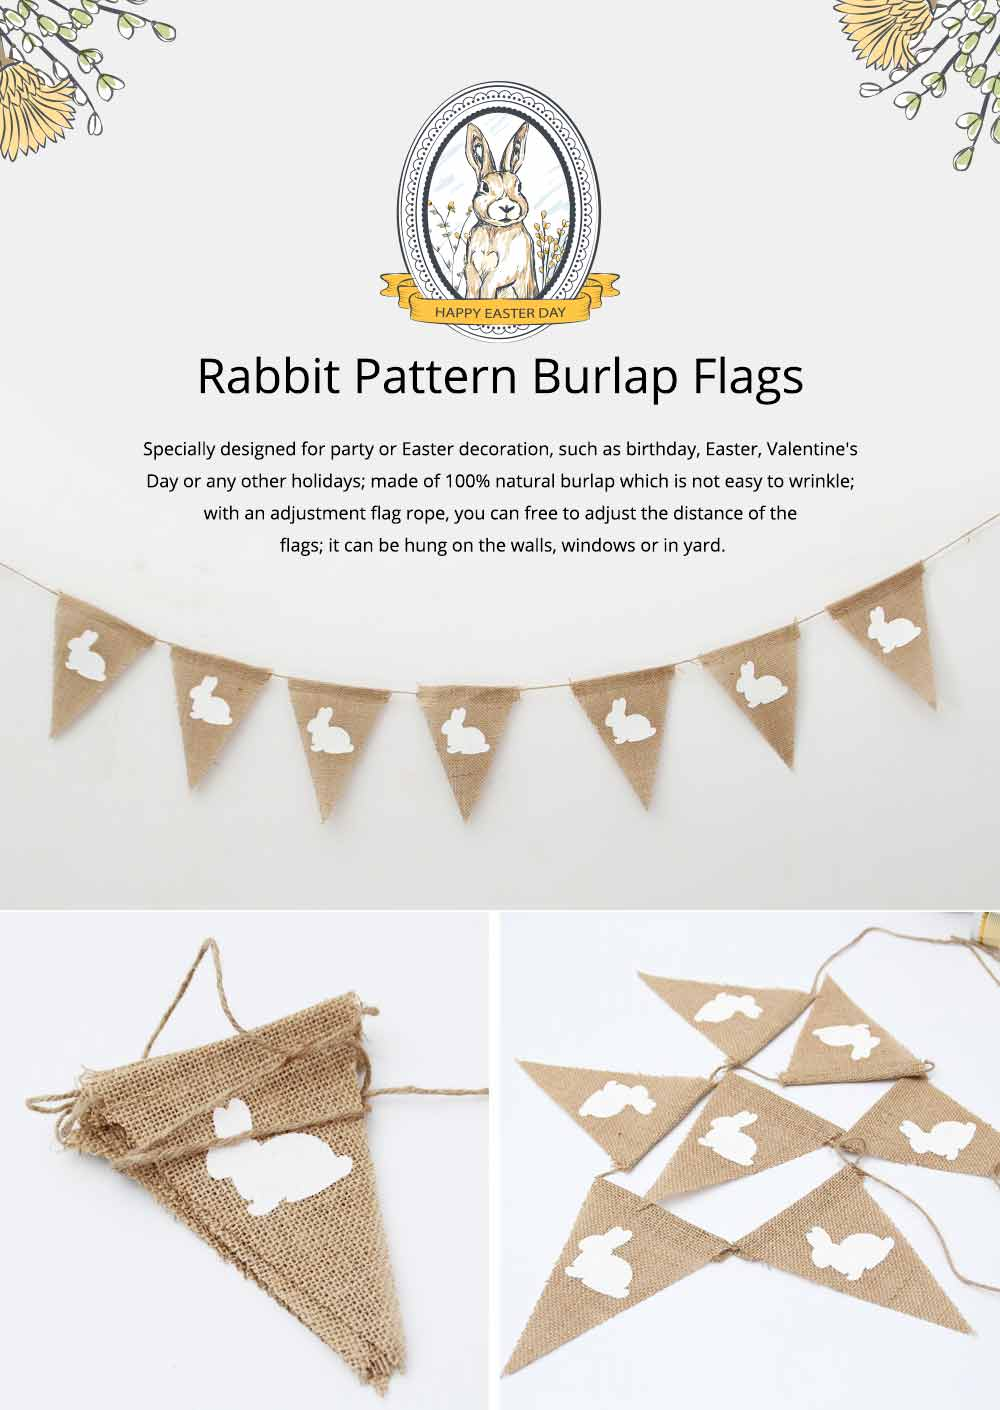 Rabbit Pattern Burlap Flags, Triangle Linen Banner for Easter or Festival Party Decoration 0